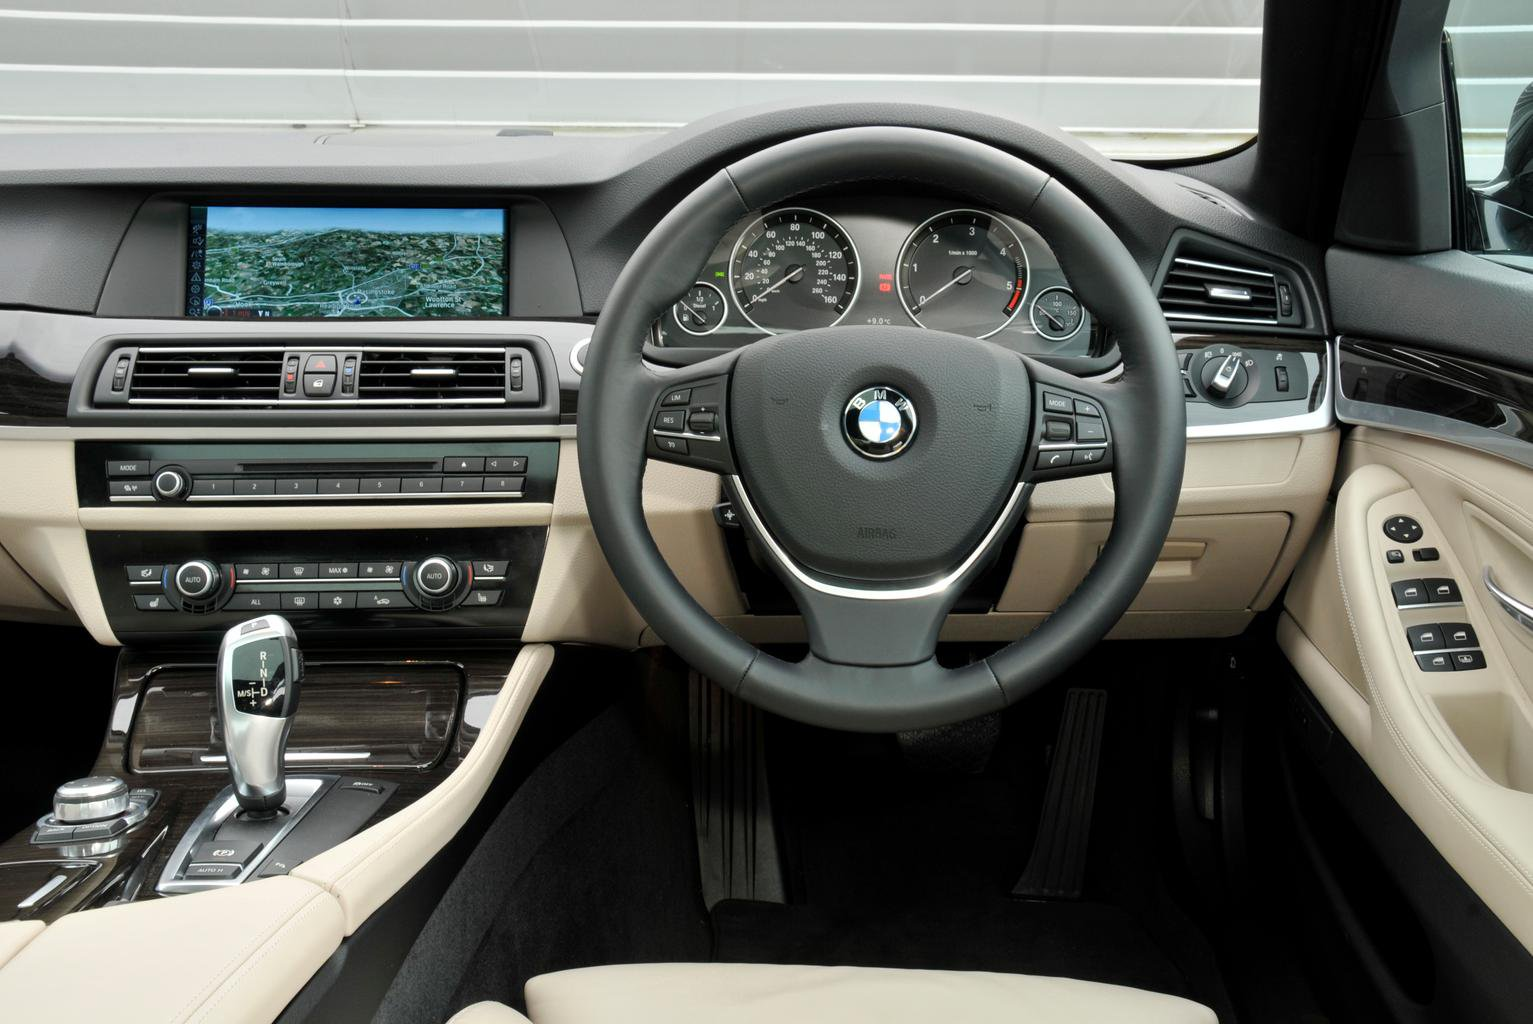 10 reasons to buy a BMW 5 Series